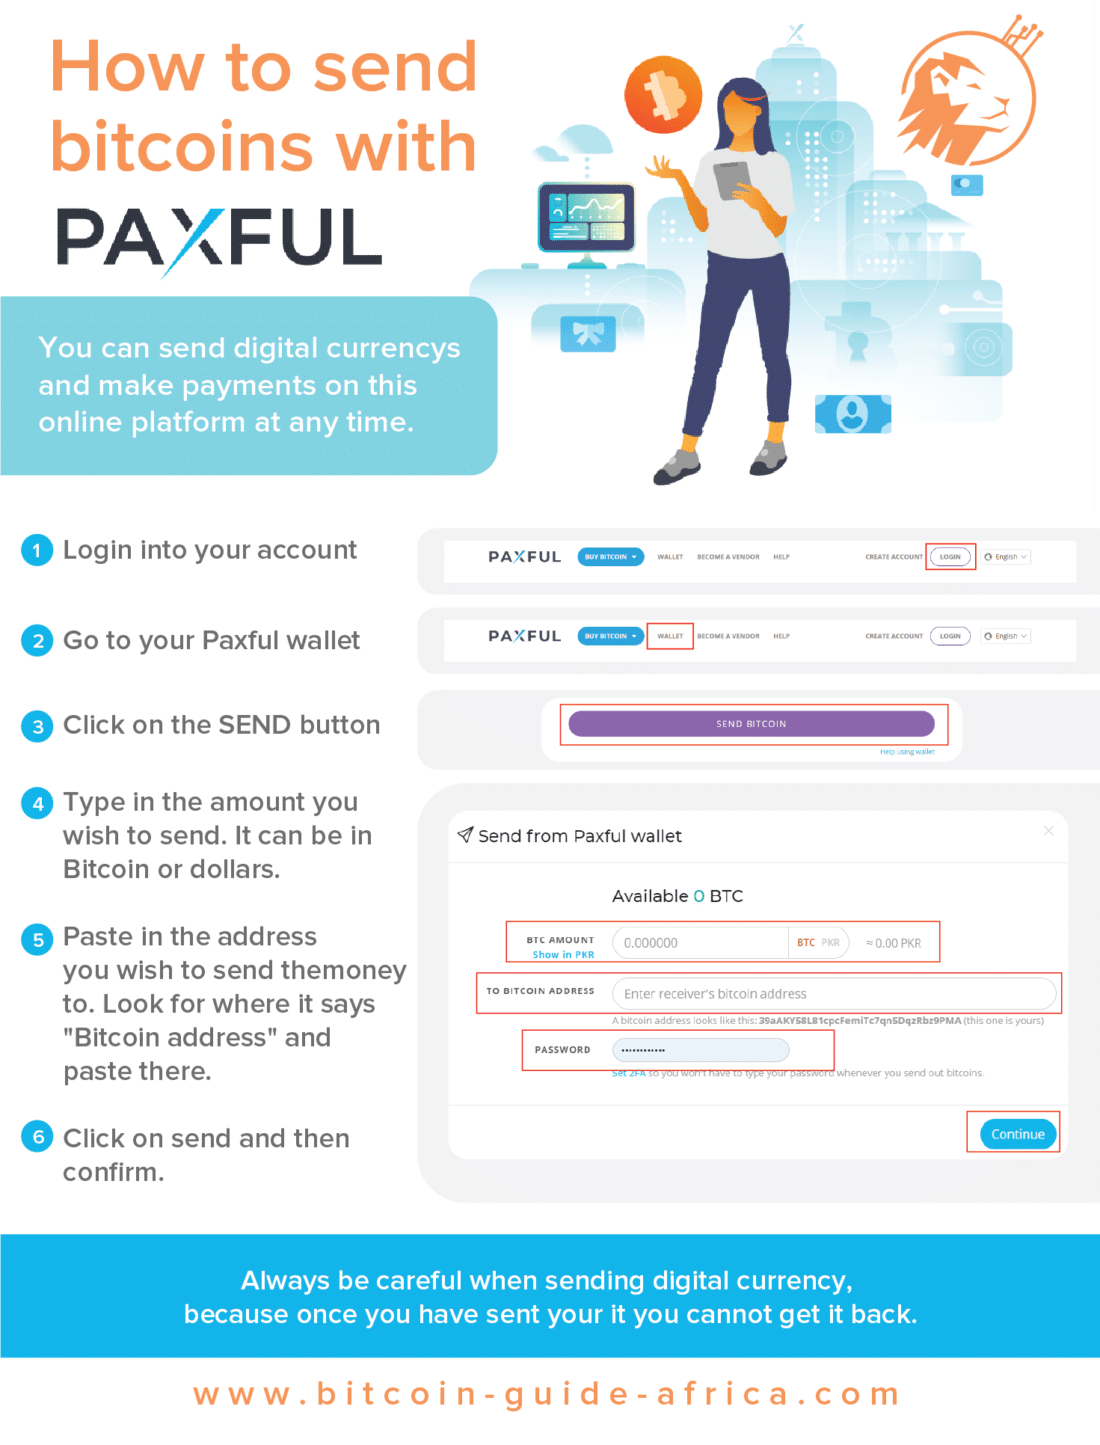 Send bitcoins with Paxful